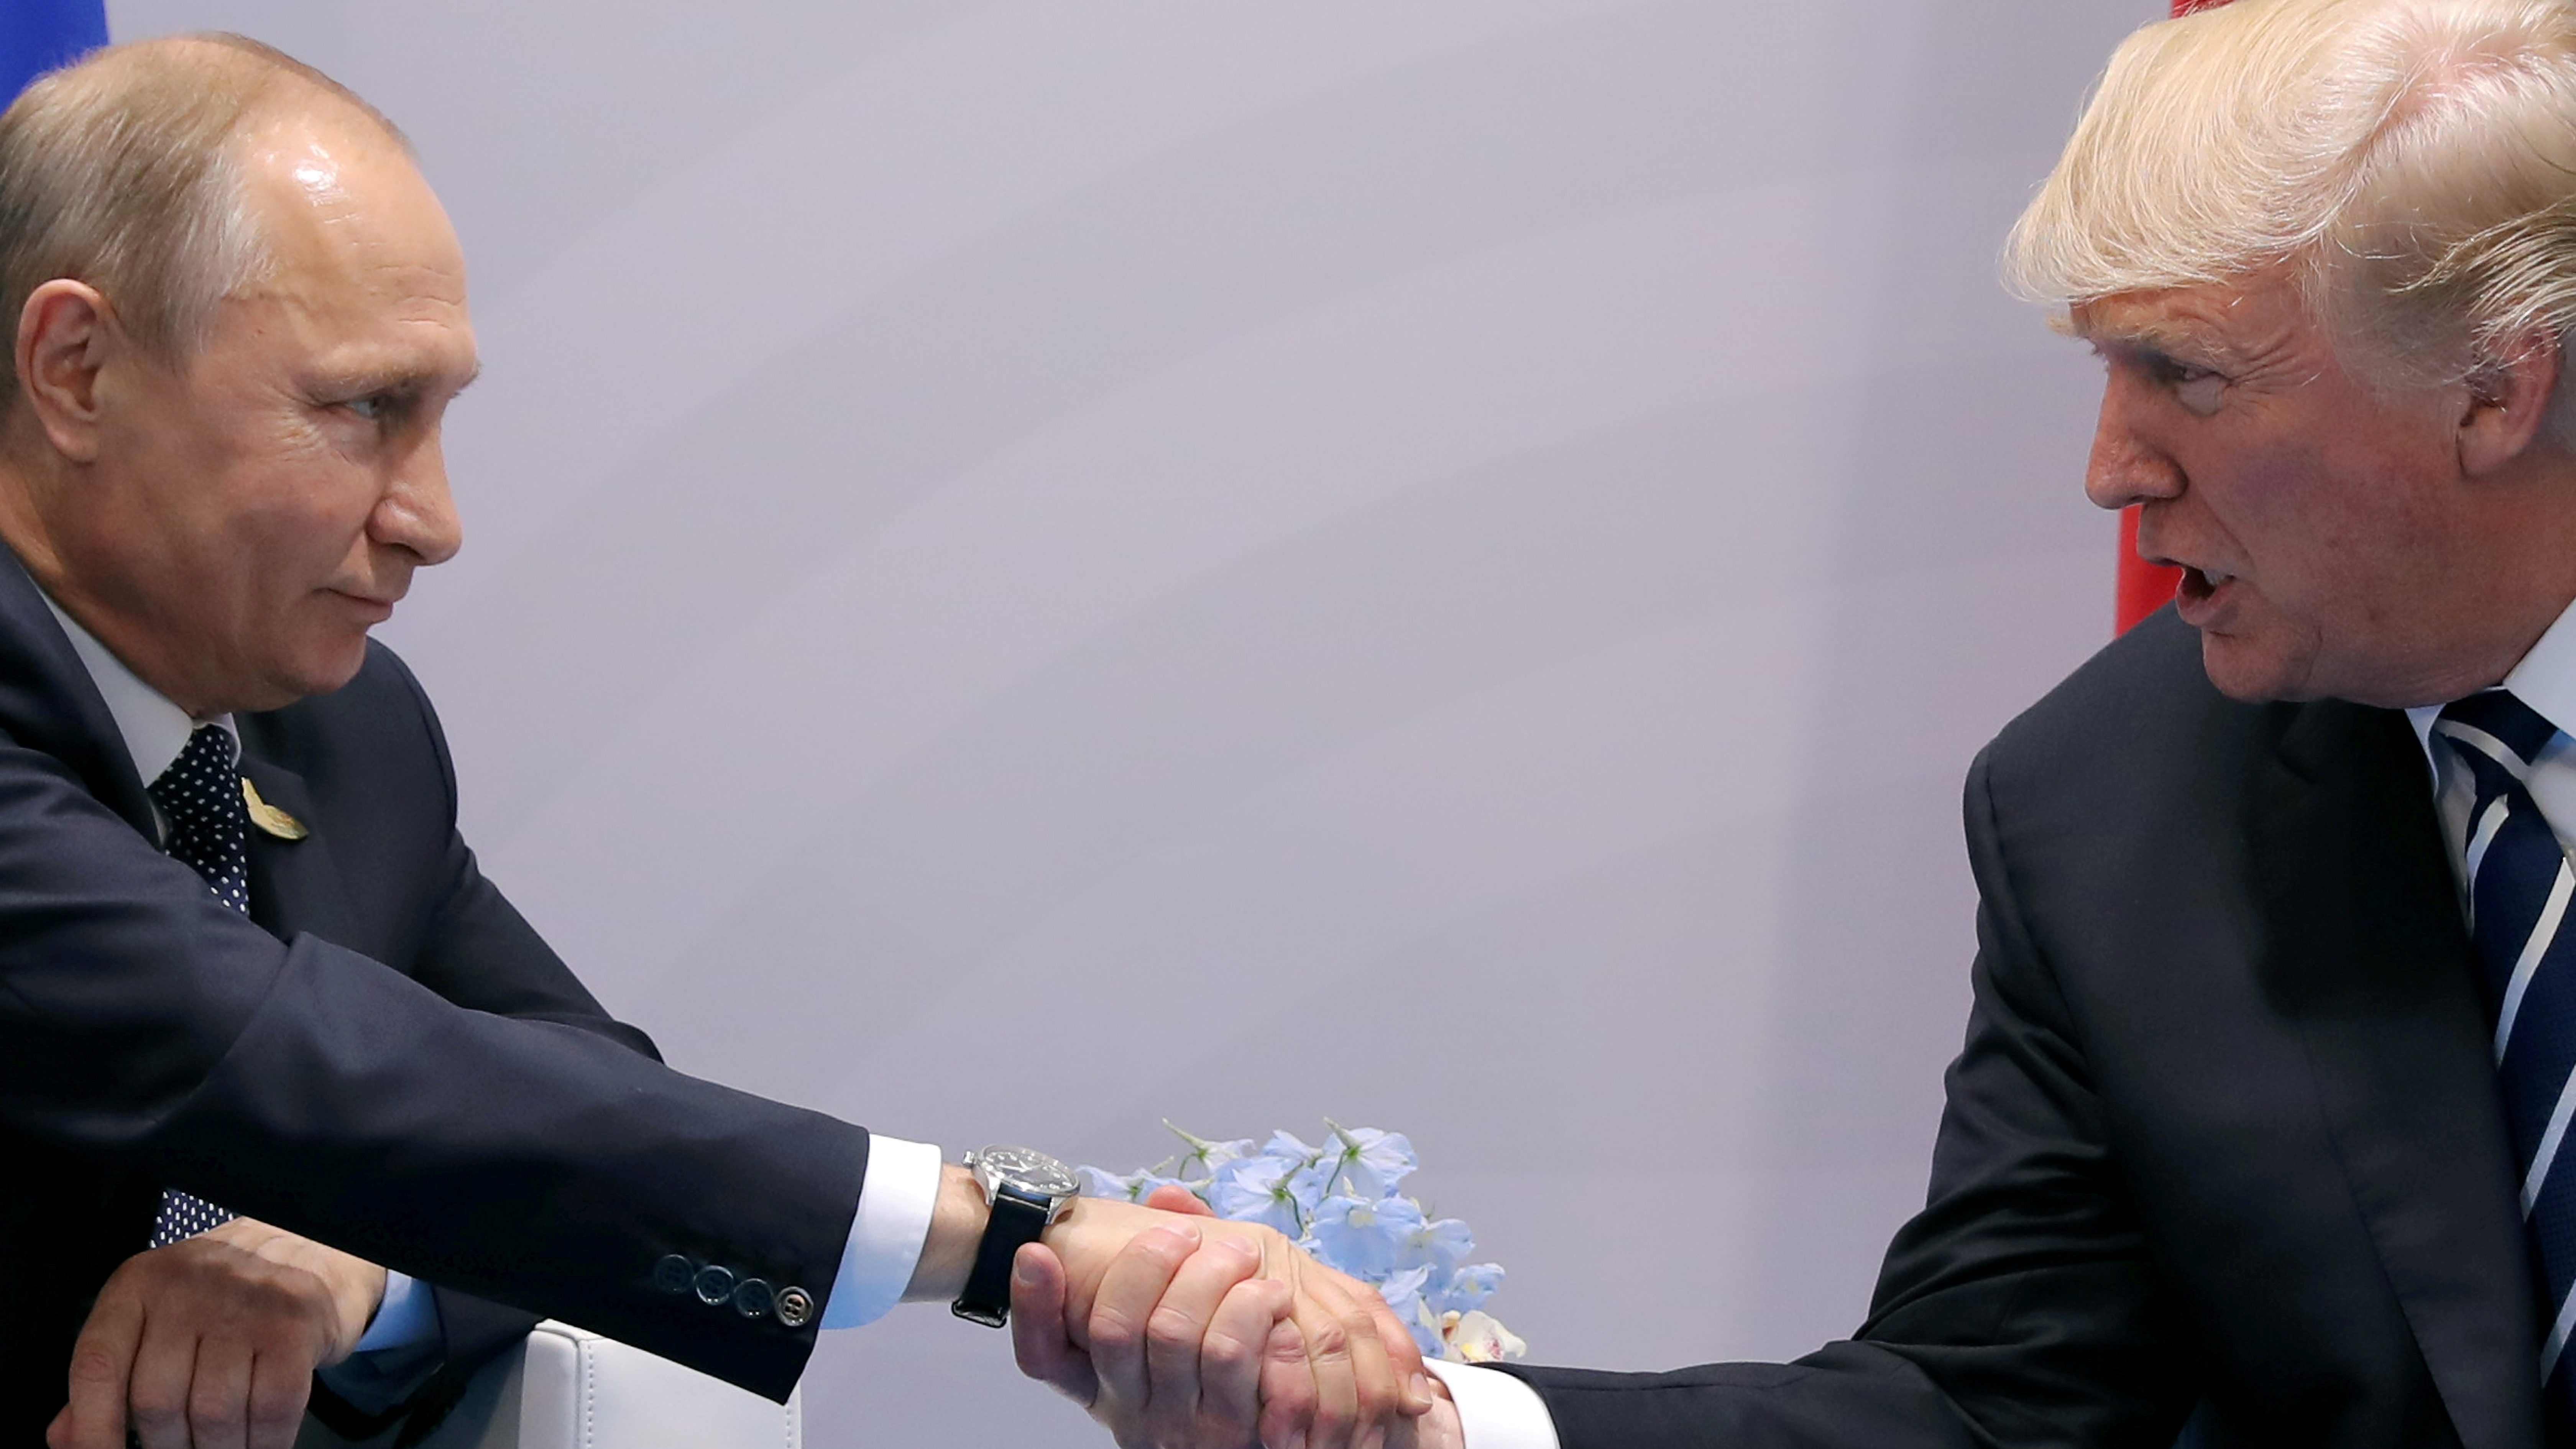 FILE PHOTO - U.S. President Donald Trump shakes hands with Russian President Vladimir Putin during the their bilateral meeting at the G20 summit in Hamburg, Germany July 7, 2017. REUTERS/Carlos Barria/File Photo - RTX3DCWM